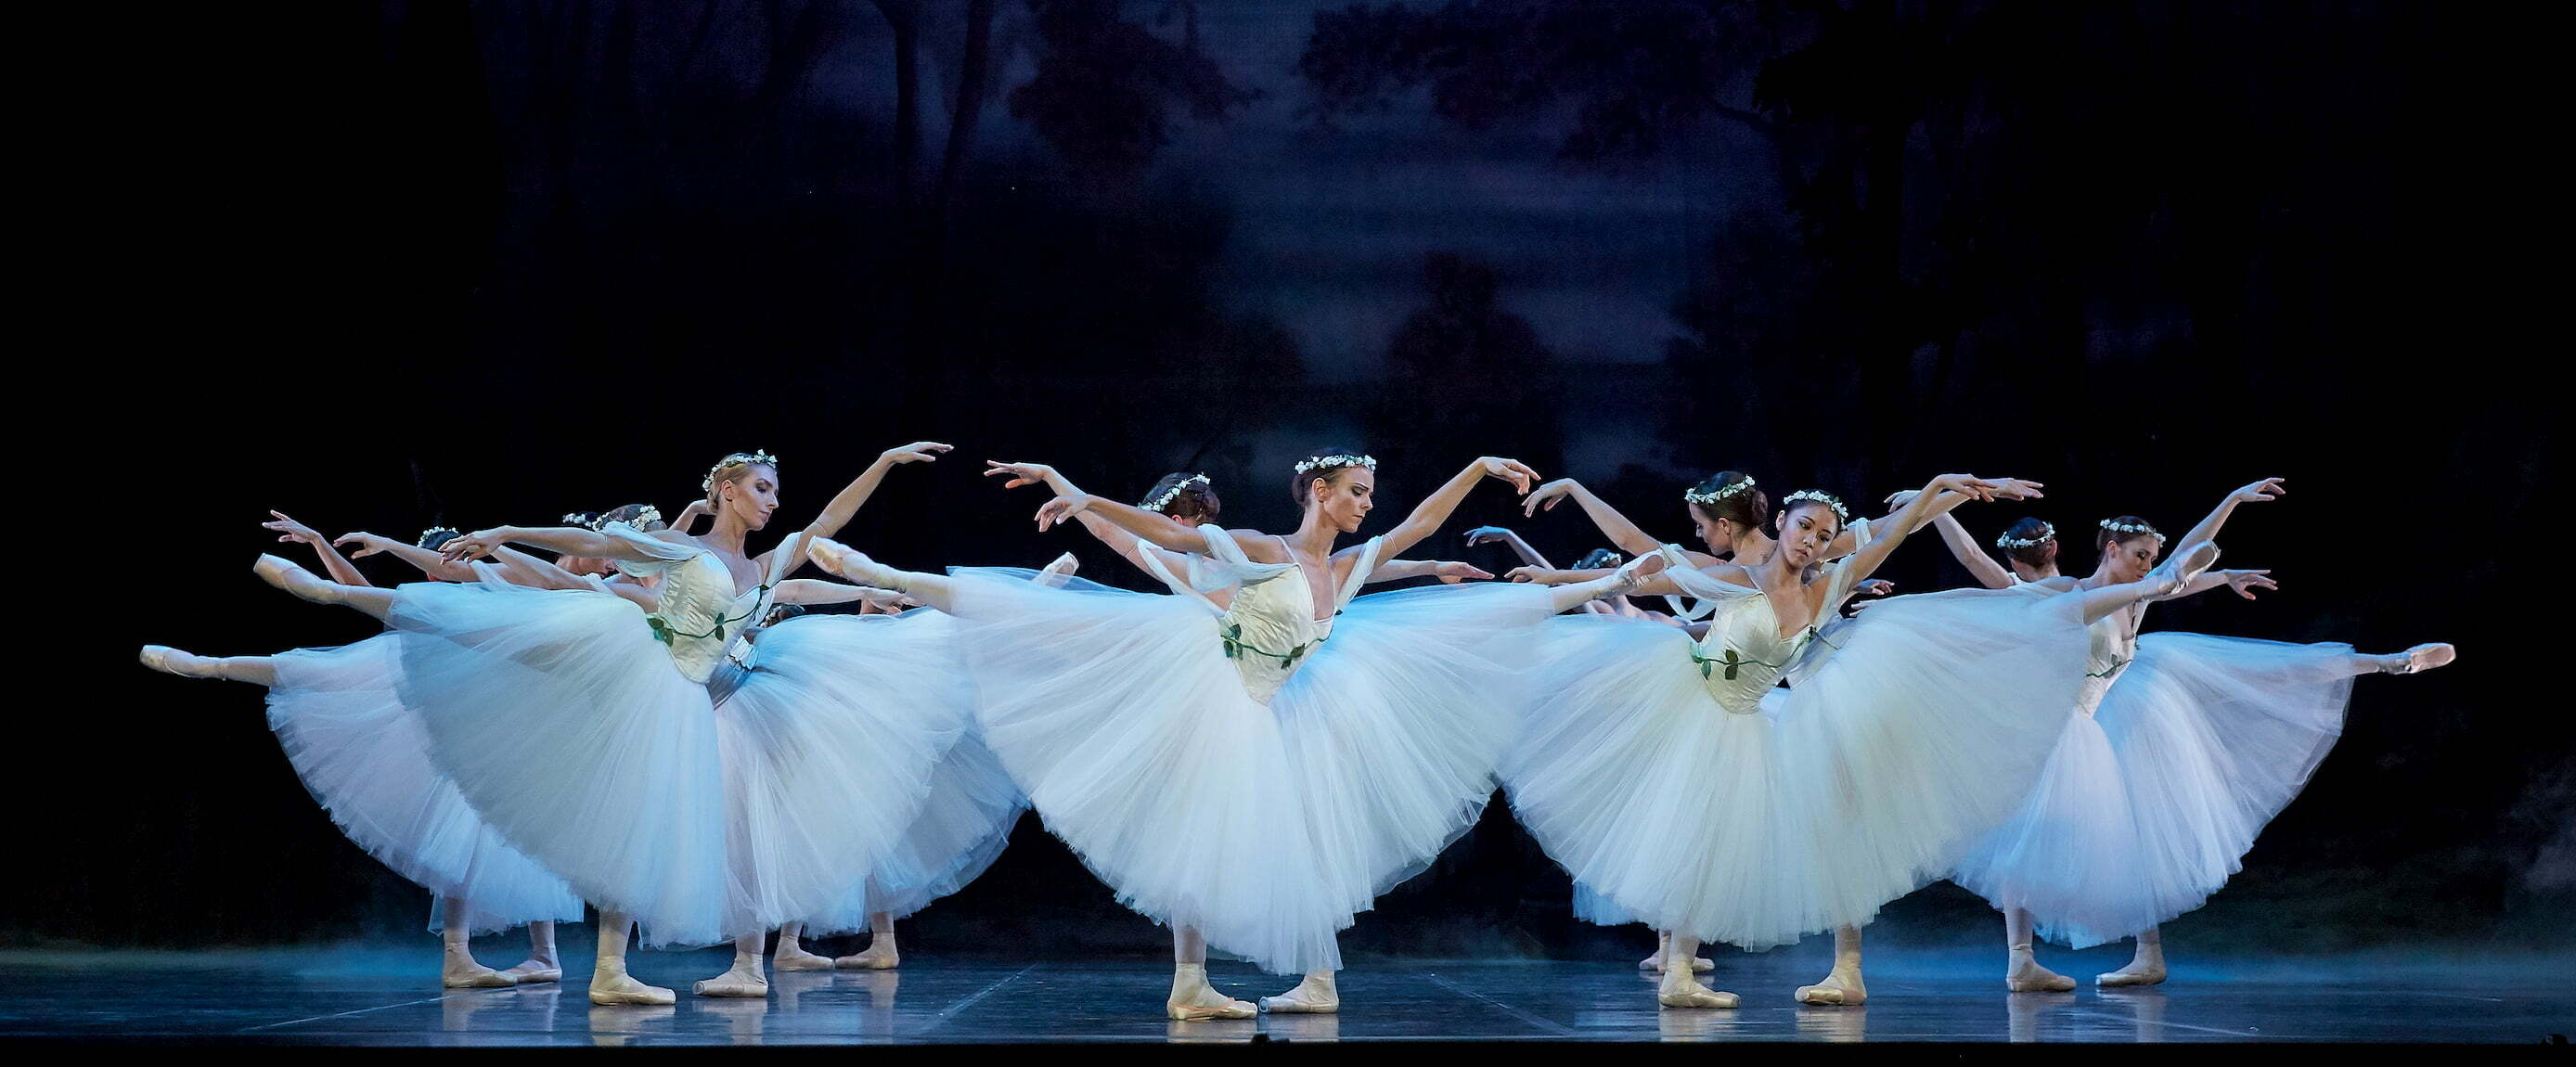 The dancers of West Australian Ballet as Wilis in Giselle (2019). Photo by Sergey Pevnev